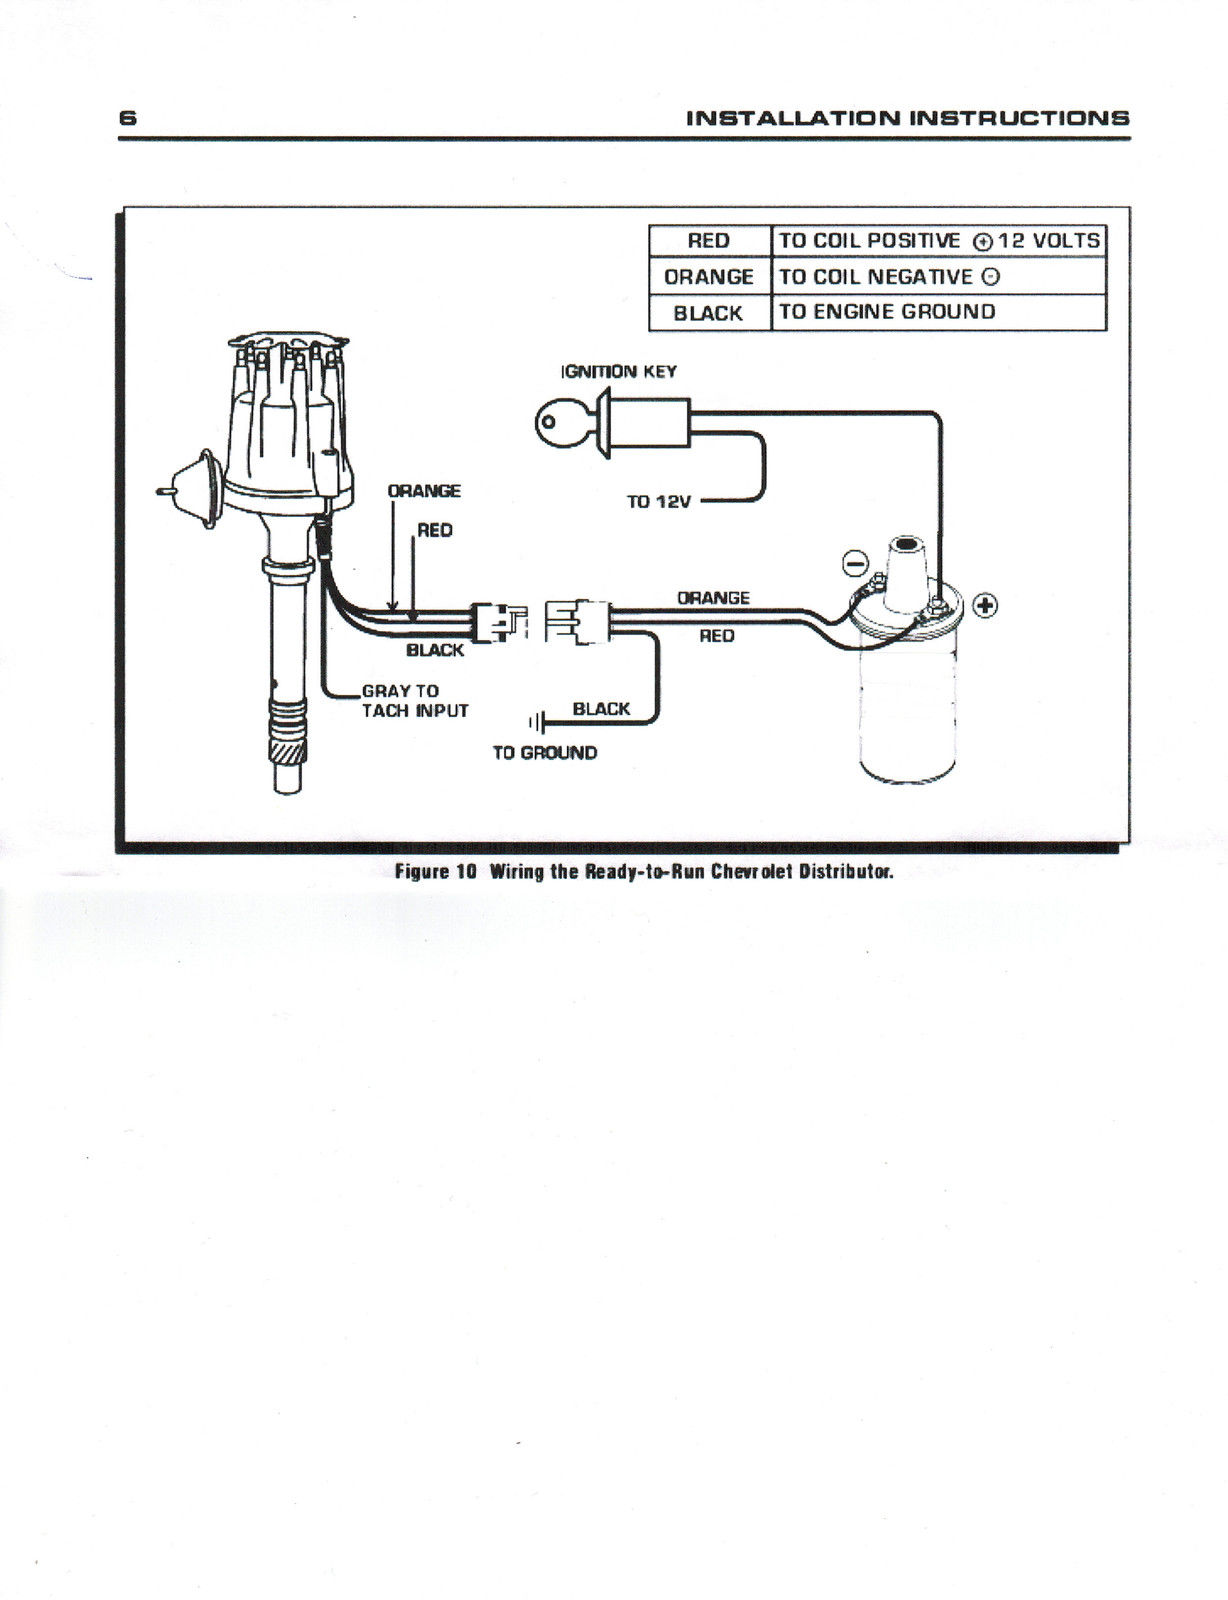 FORD 351 W Windsor Small Cap Pro Series HEI Distributor & 8mm Spark Plug  Wires - SwapMeetParts